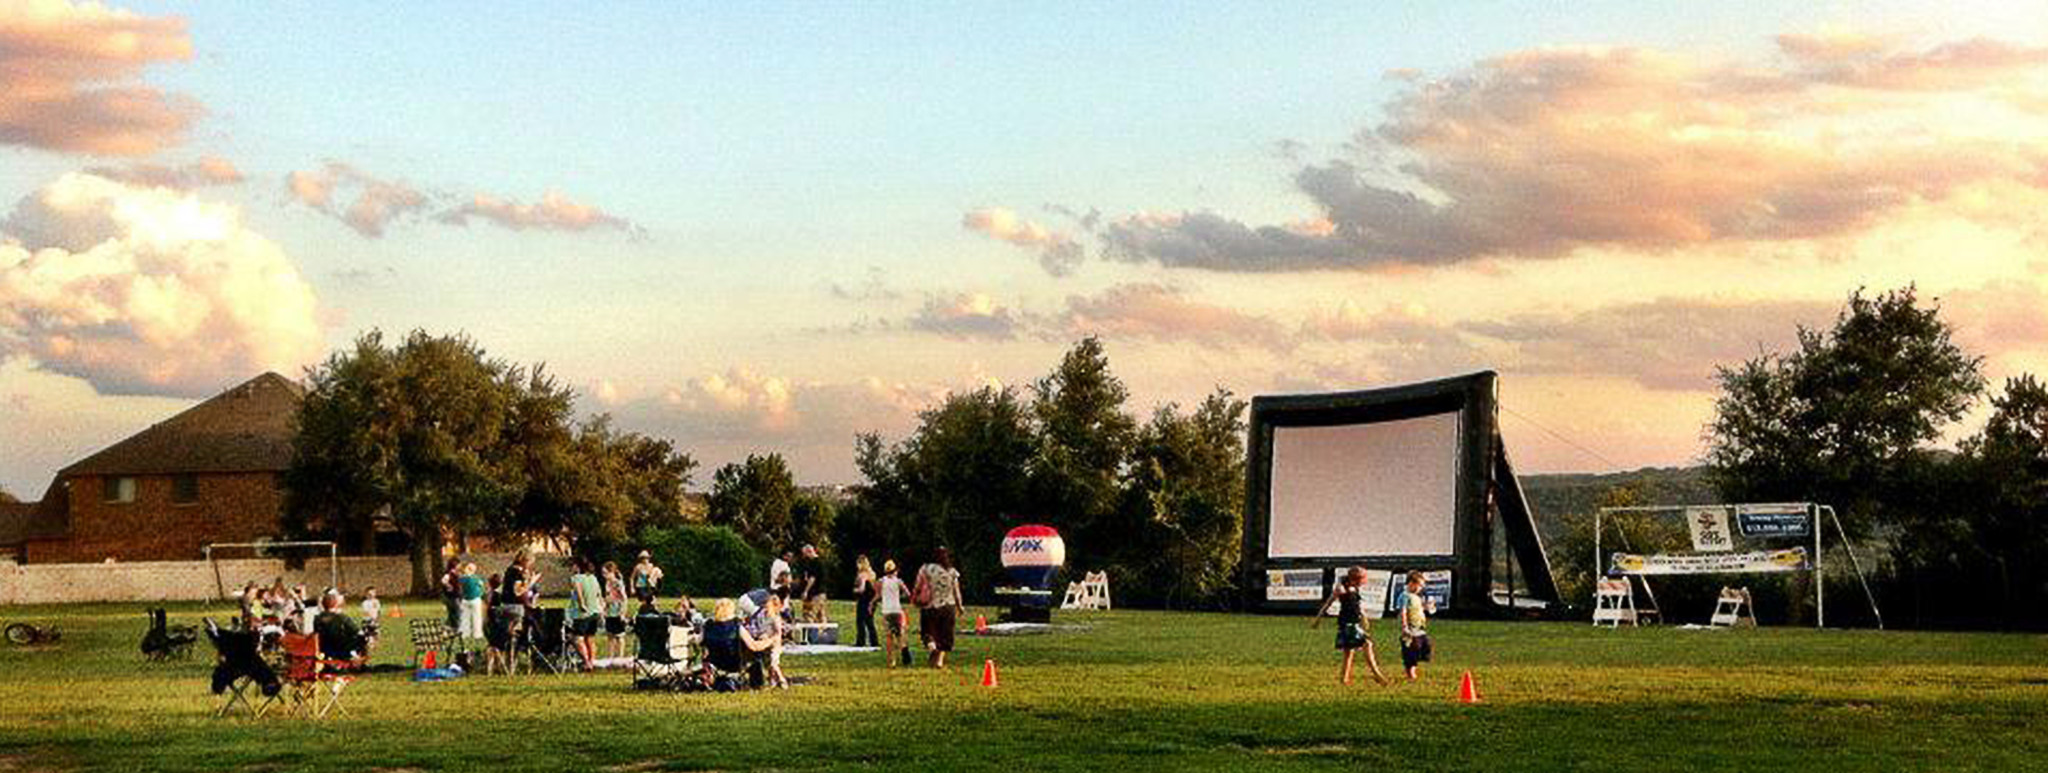 Steiner Ranch Movies in the Park